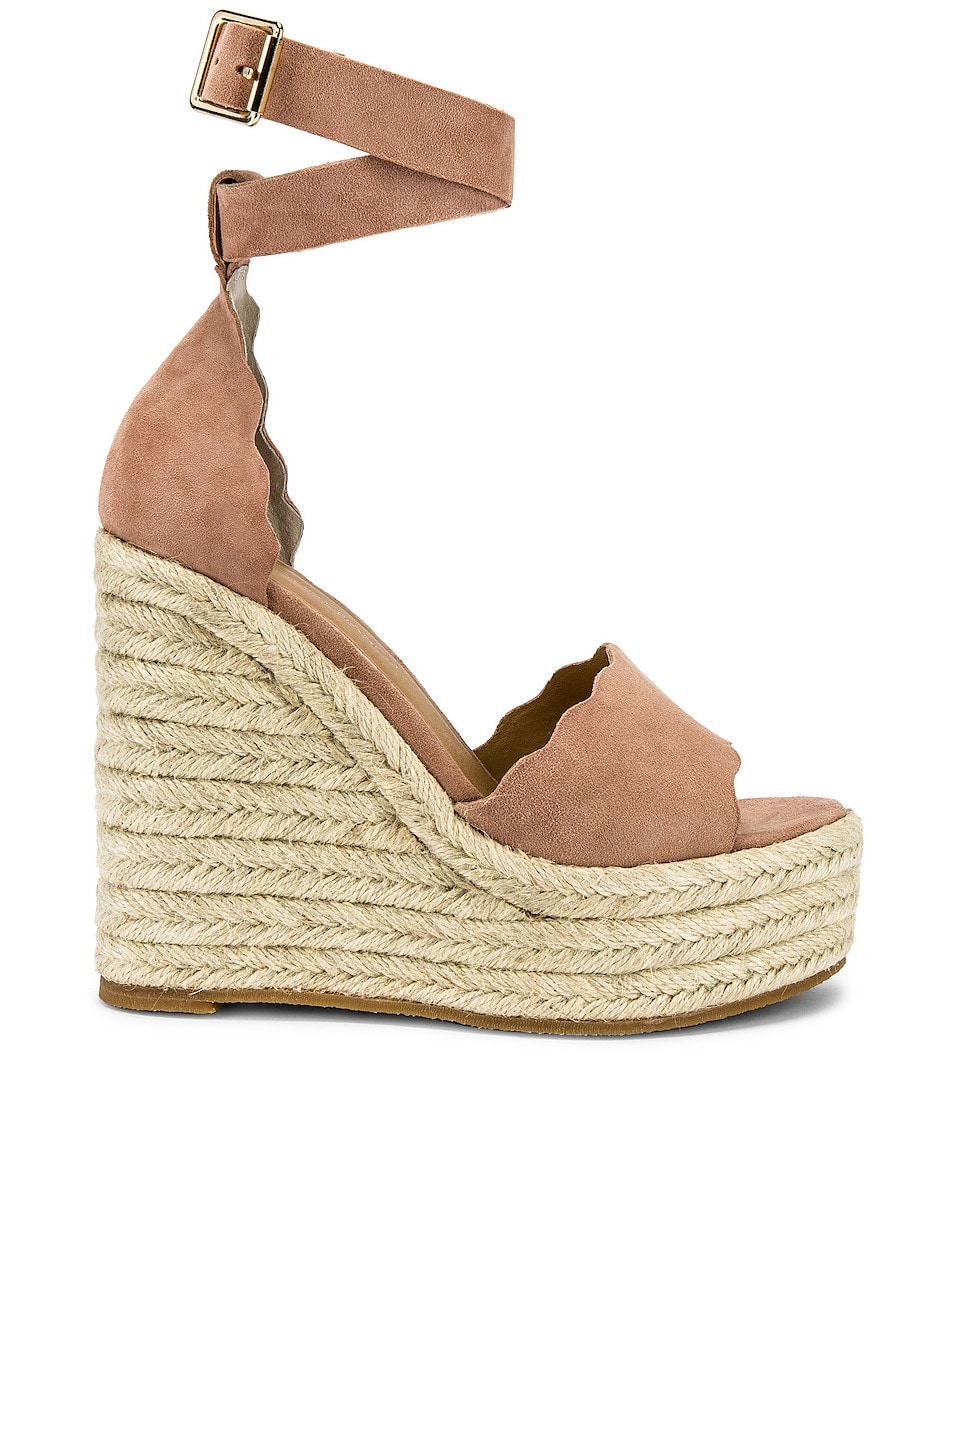 Tony Bianco Brandi Wedge in Blush Kid Suede